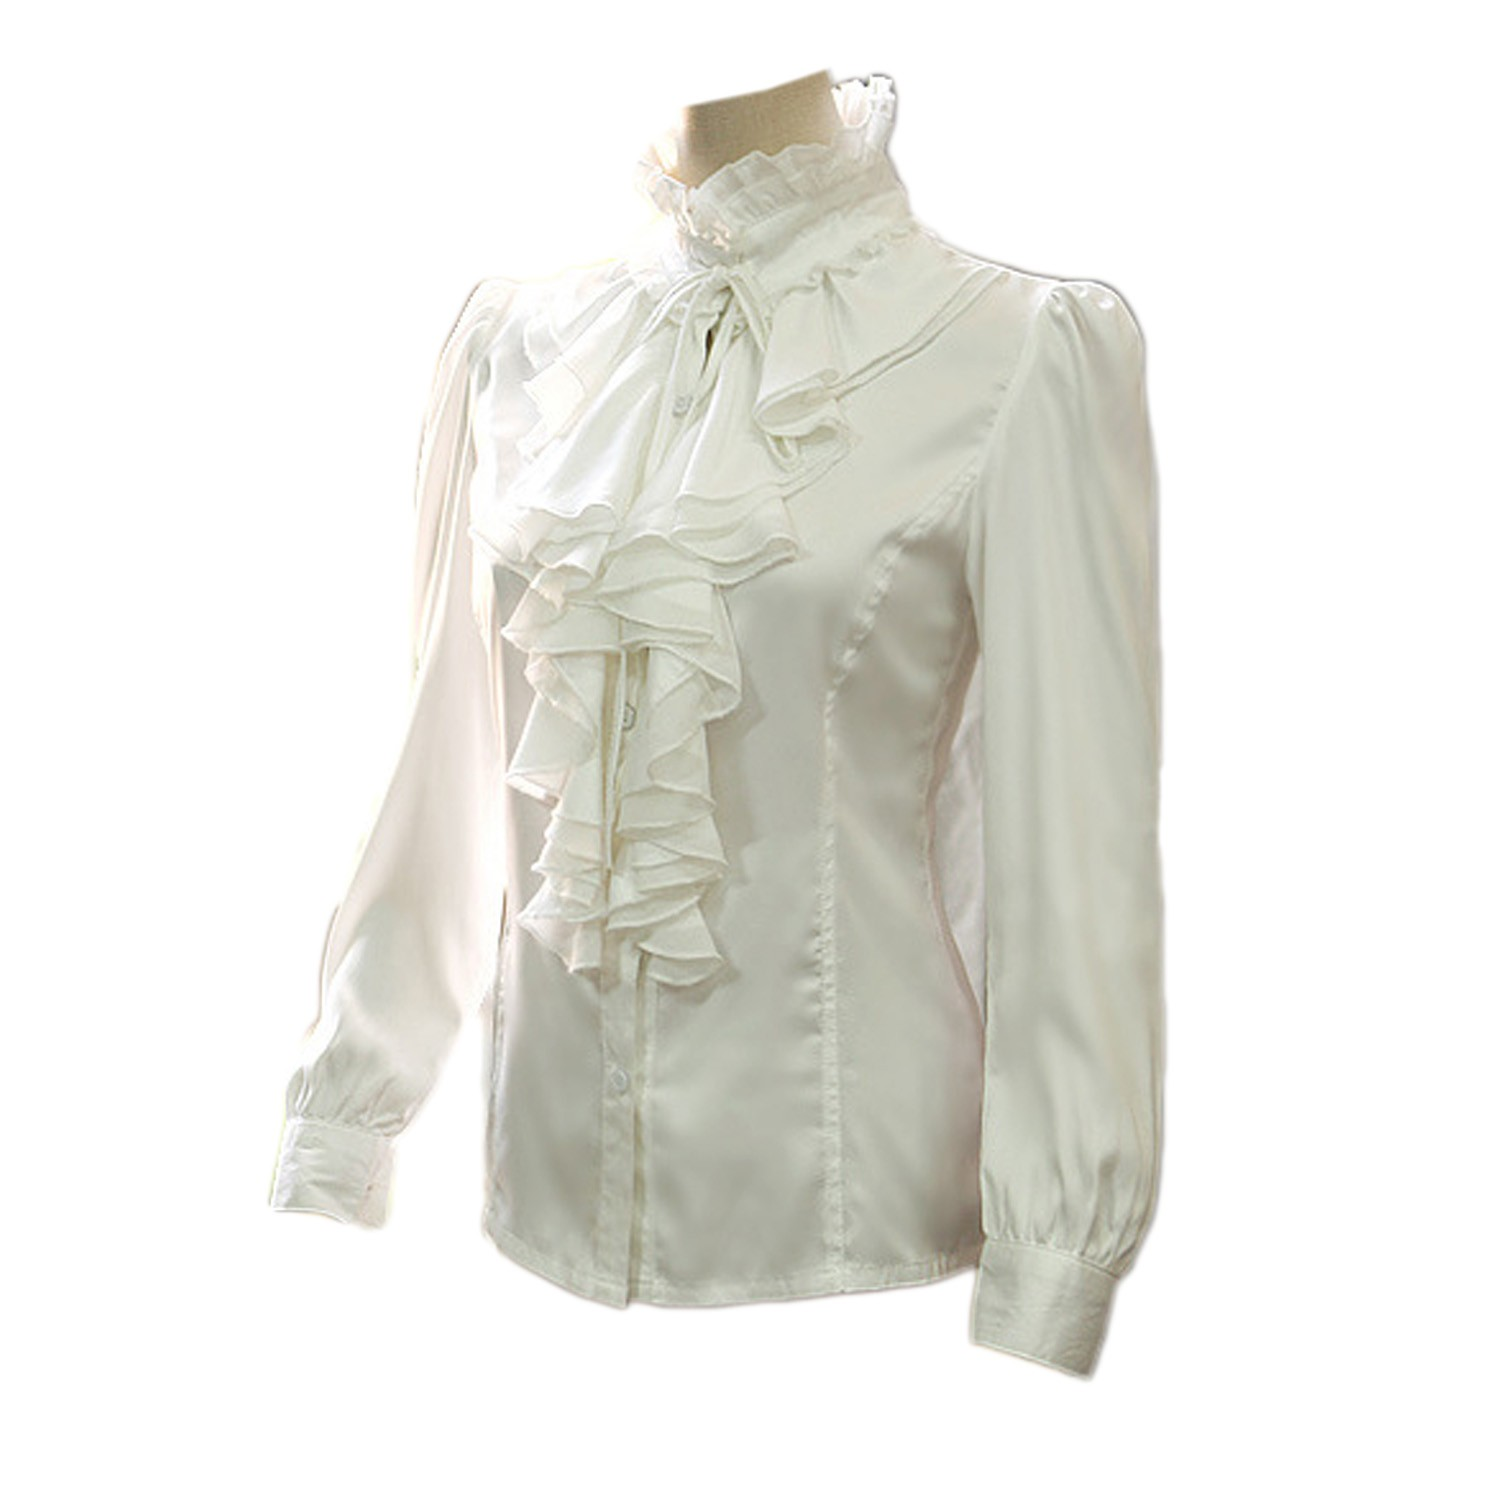 Womens White Frilly Blouse 19